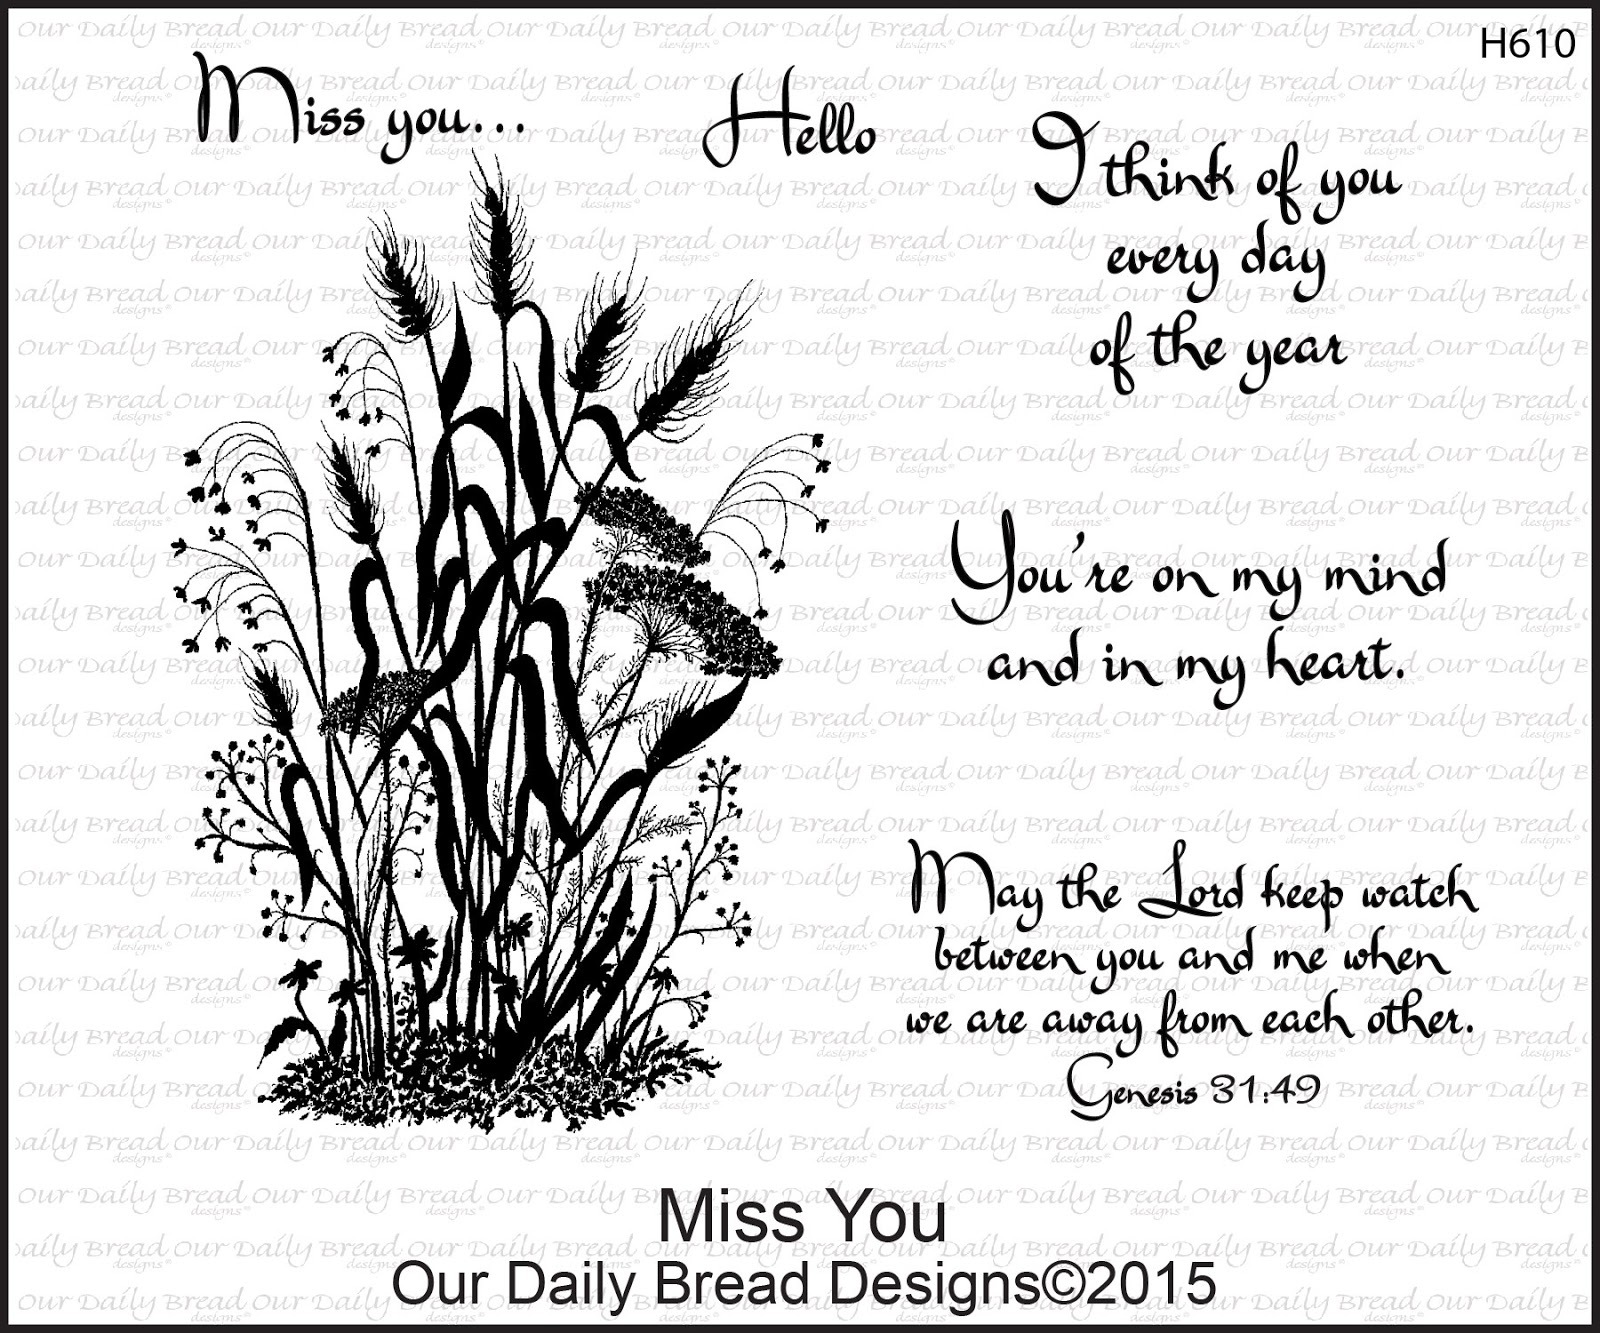 https://www.ourdailybreaddesigns.com/index.php/h610-miss-you.html